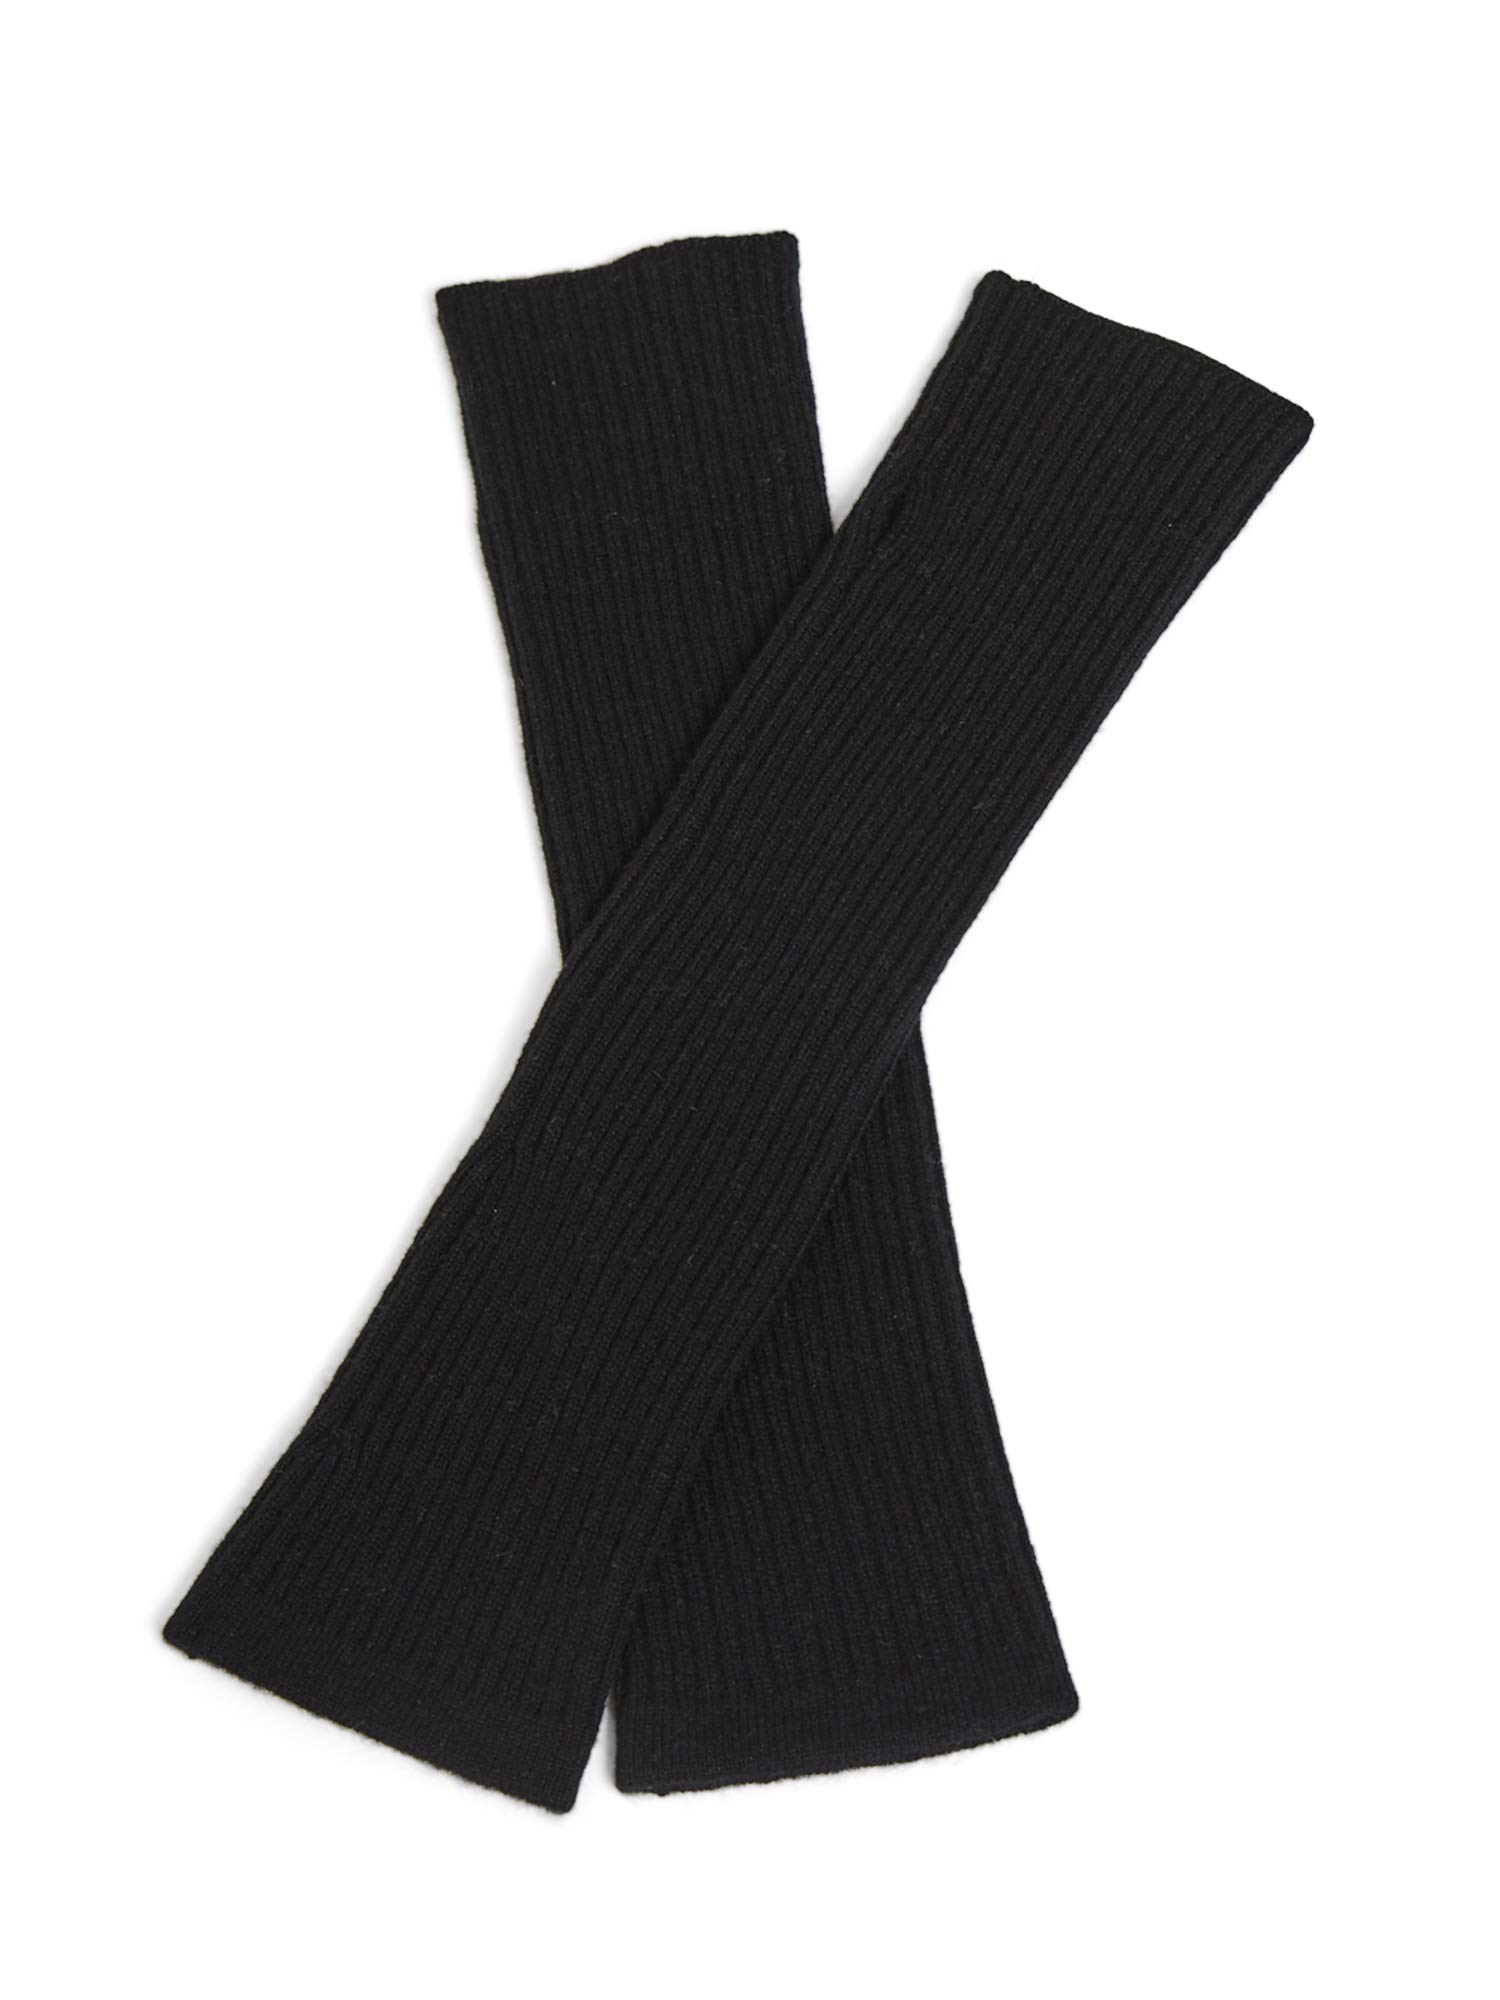 State Cashmere Women's 100% Cashmere Knit Long Fingerless Arm Warmers Mitten Gloves 13''